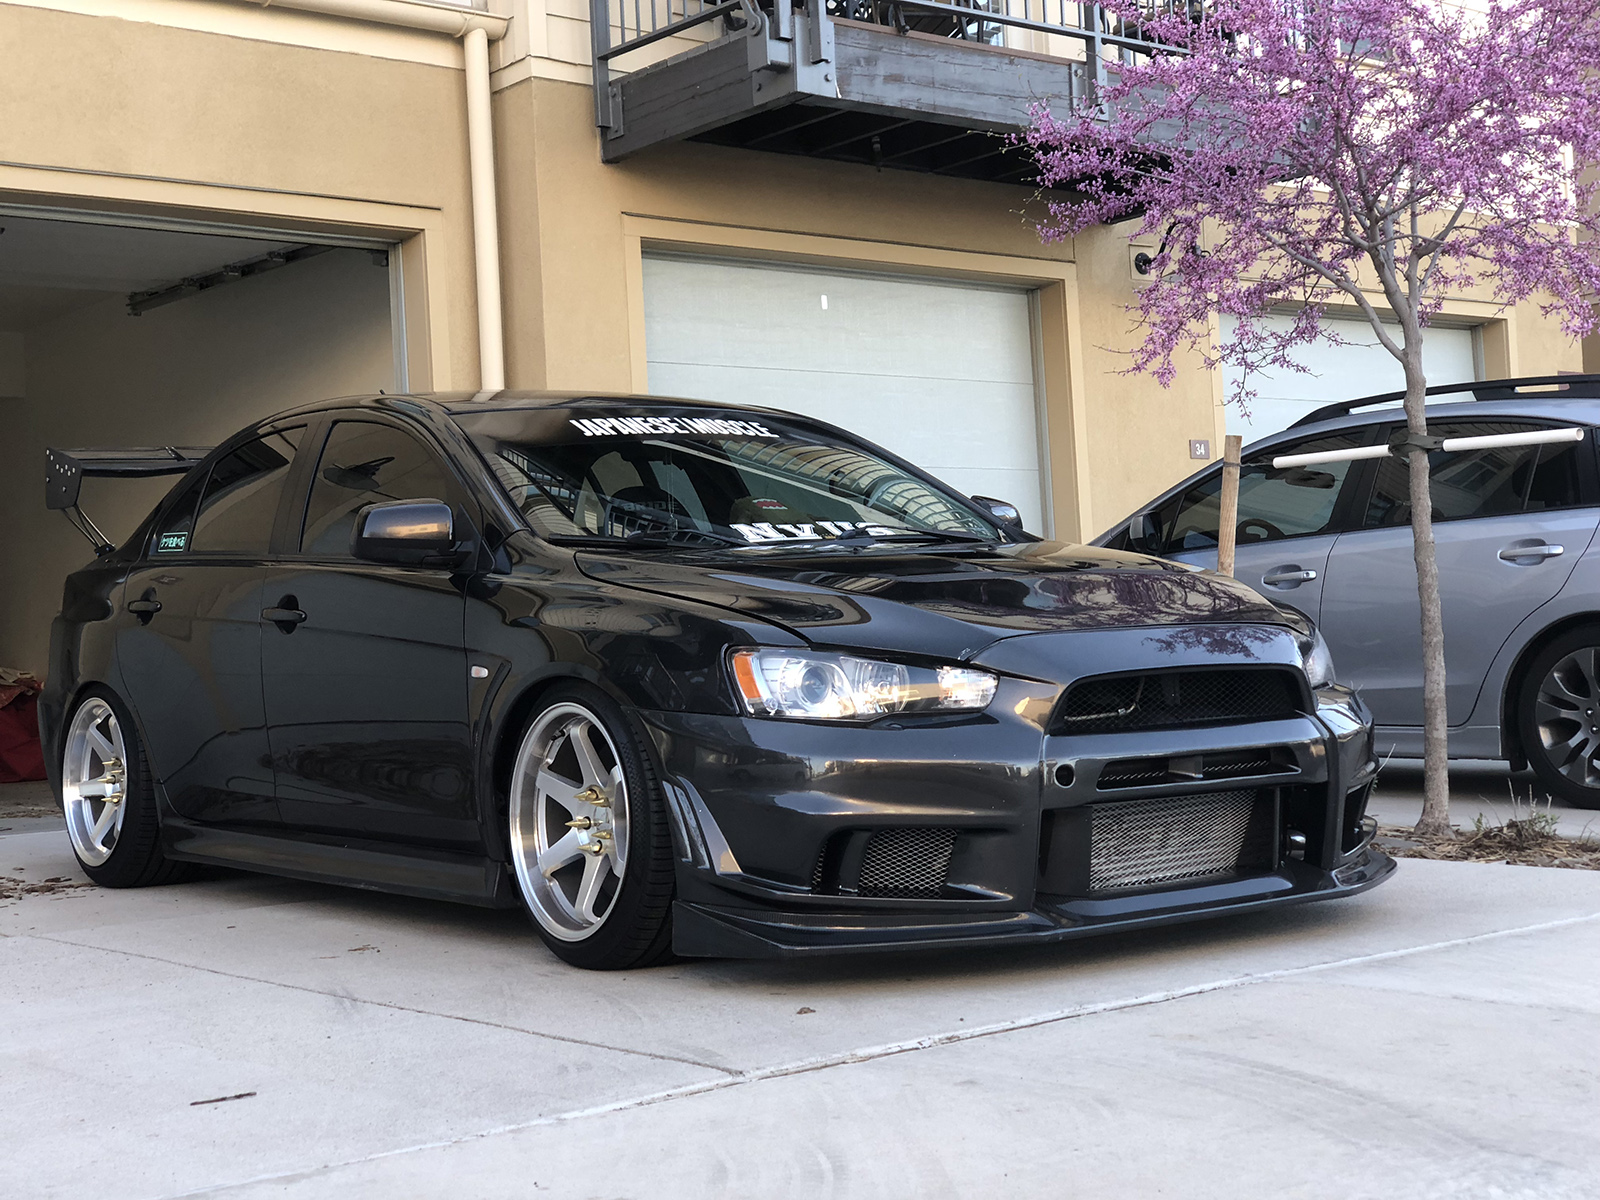 Axel Dominick Howard 2011 Mitsubishi Lancer Evolution TBGLIVE2